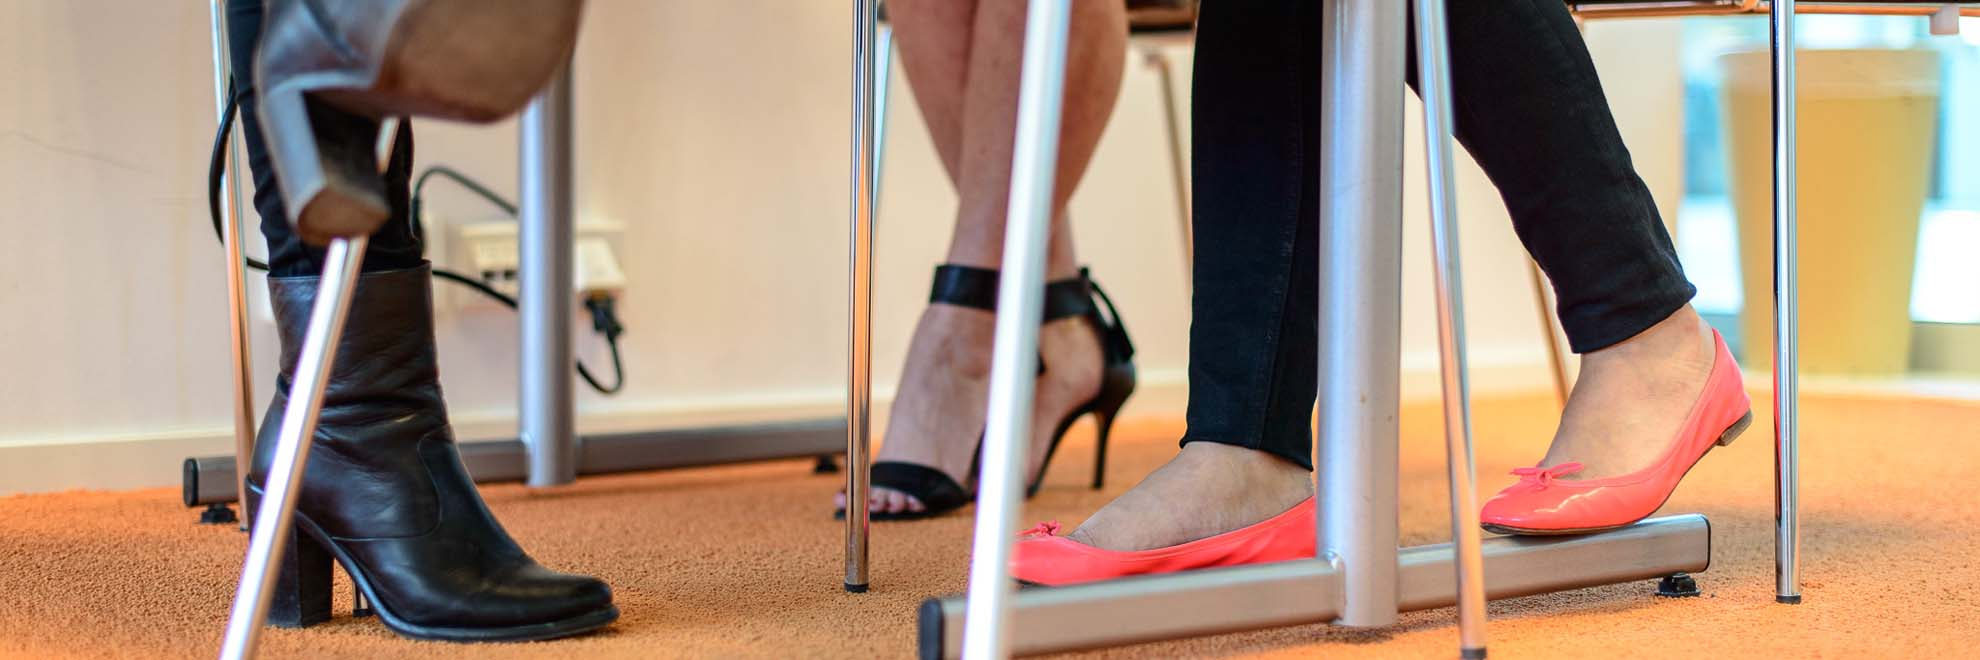 close up on feet